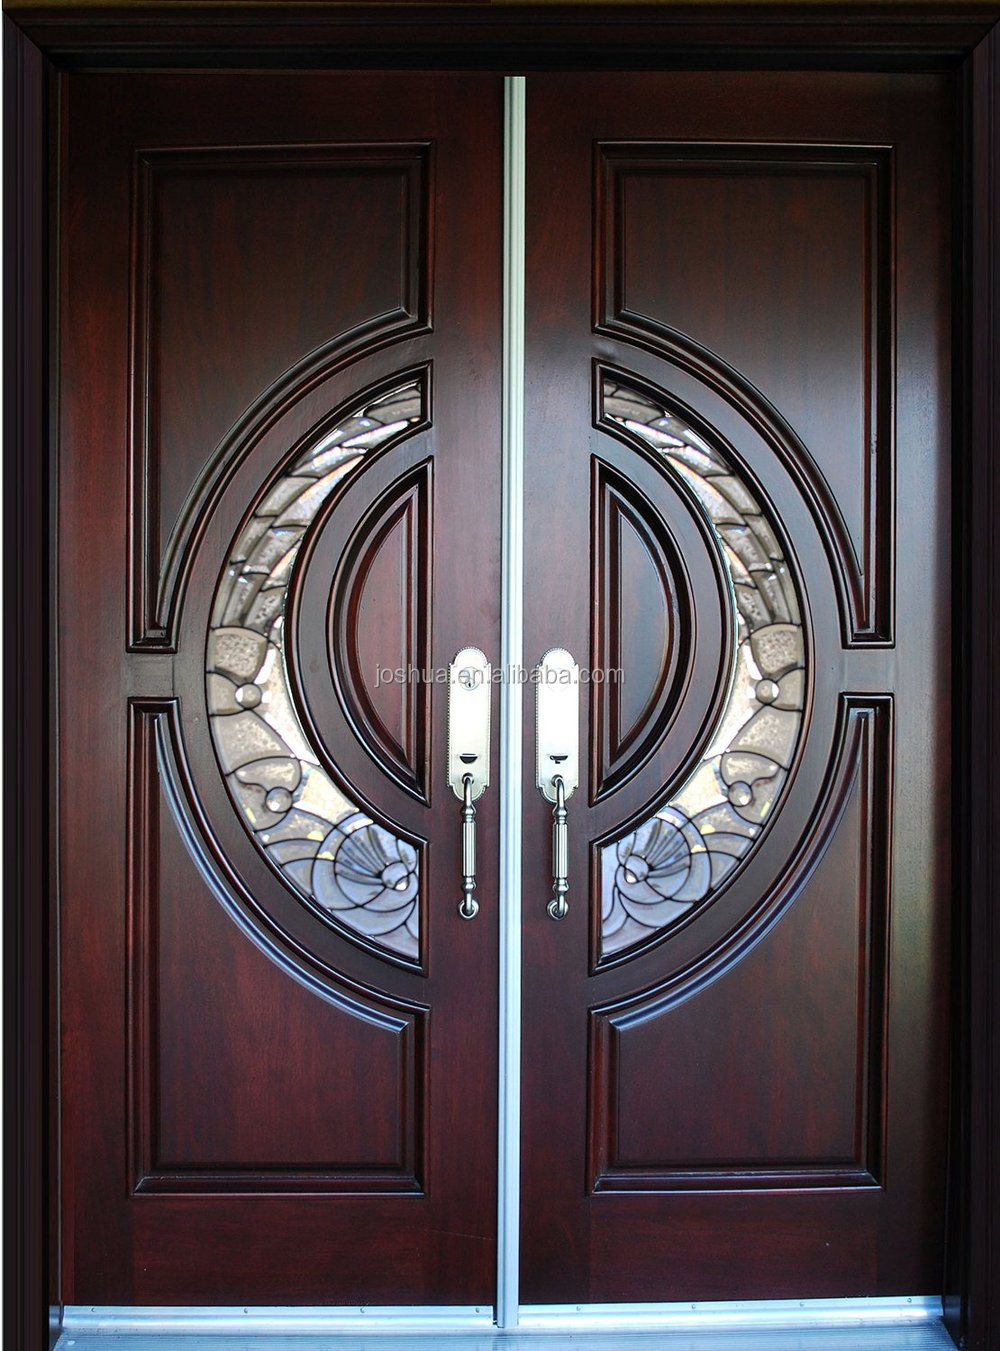 100 mahogany tiffany wood door exterior front entry for Entrance double door designs for houses